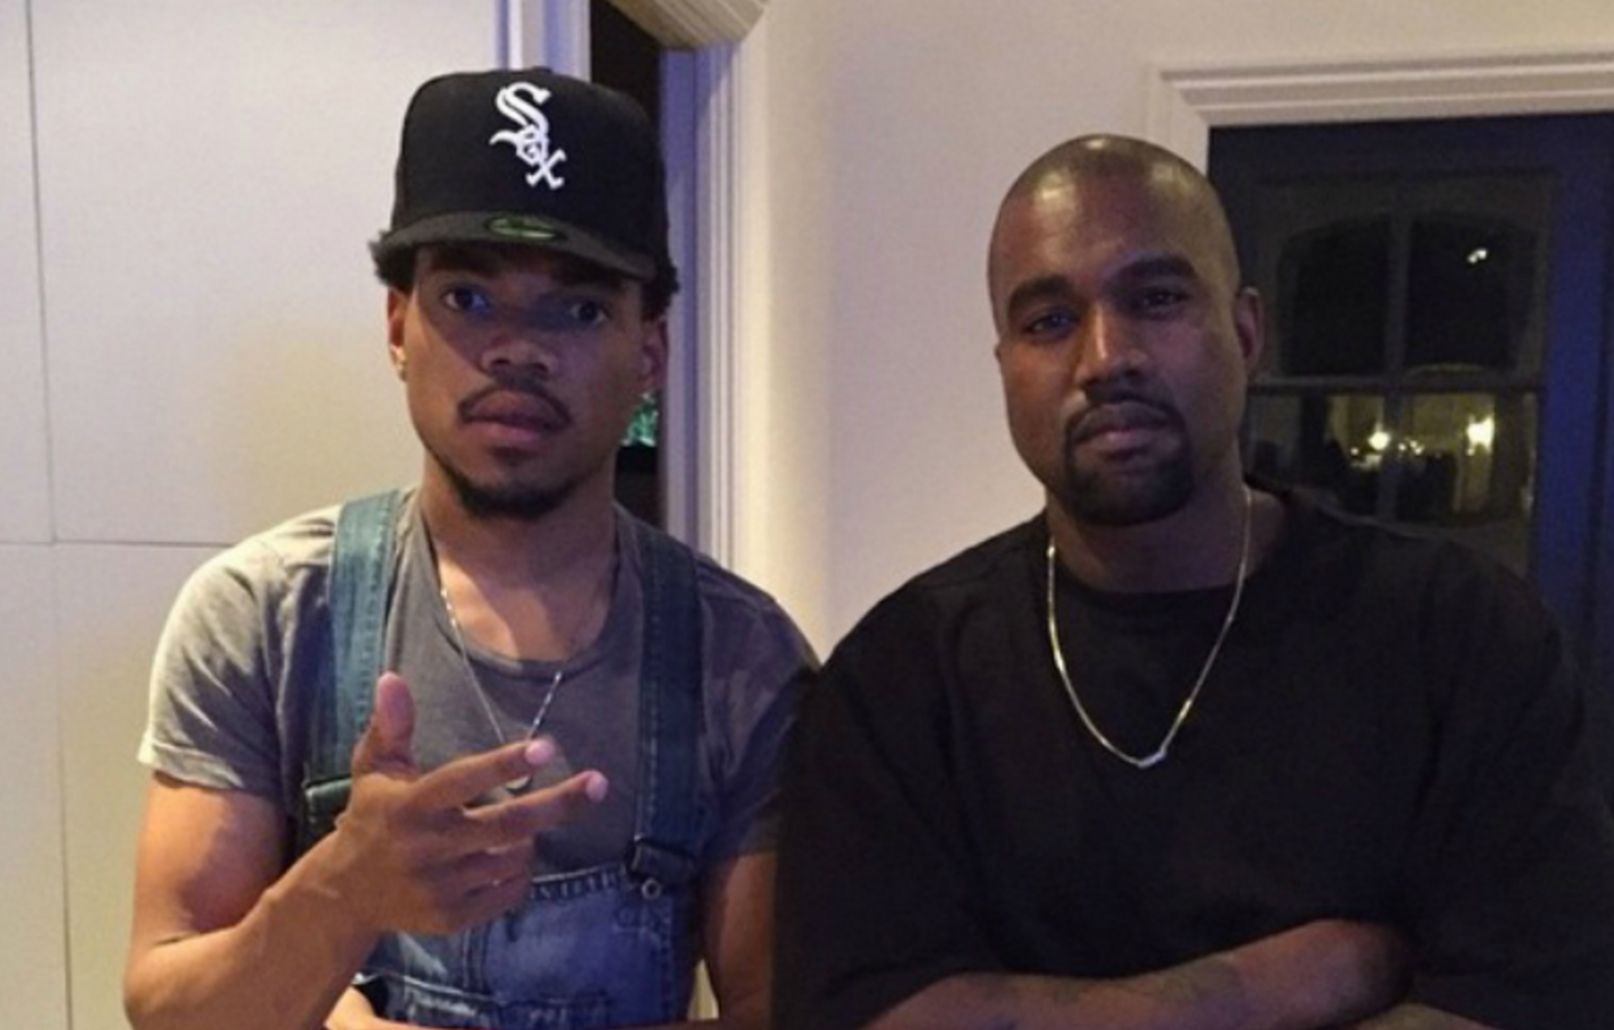 Chance The Rapper and Kanye West